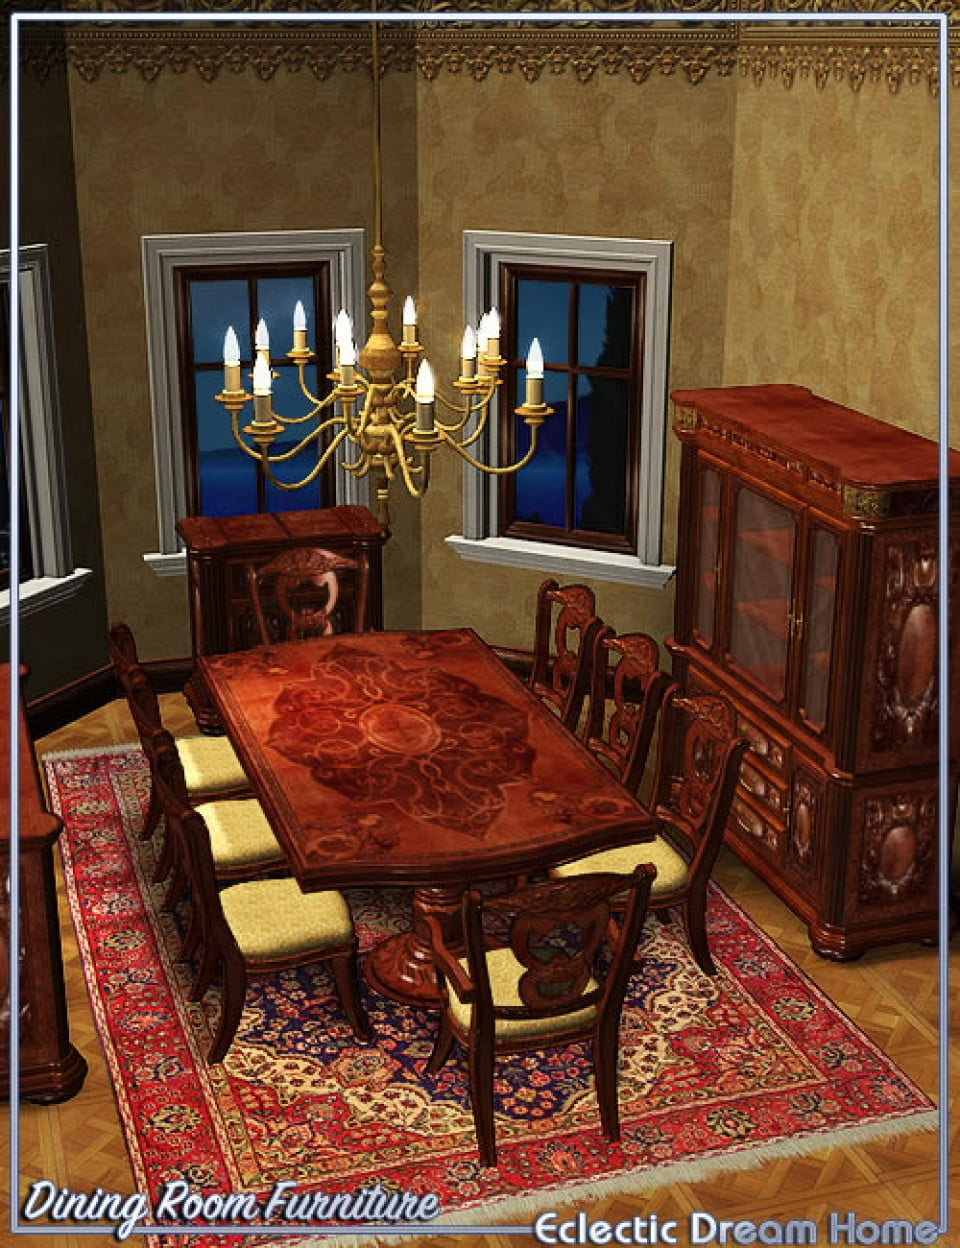 Dream Home: Dining Room Furniture Eclectic  [UPDATED]